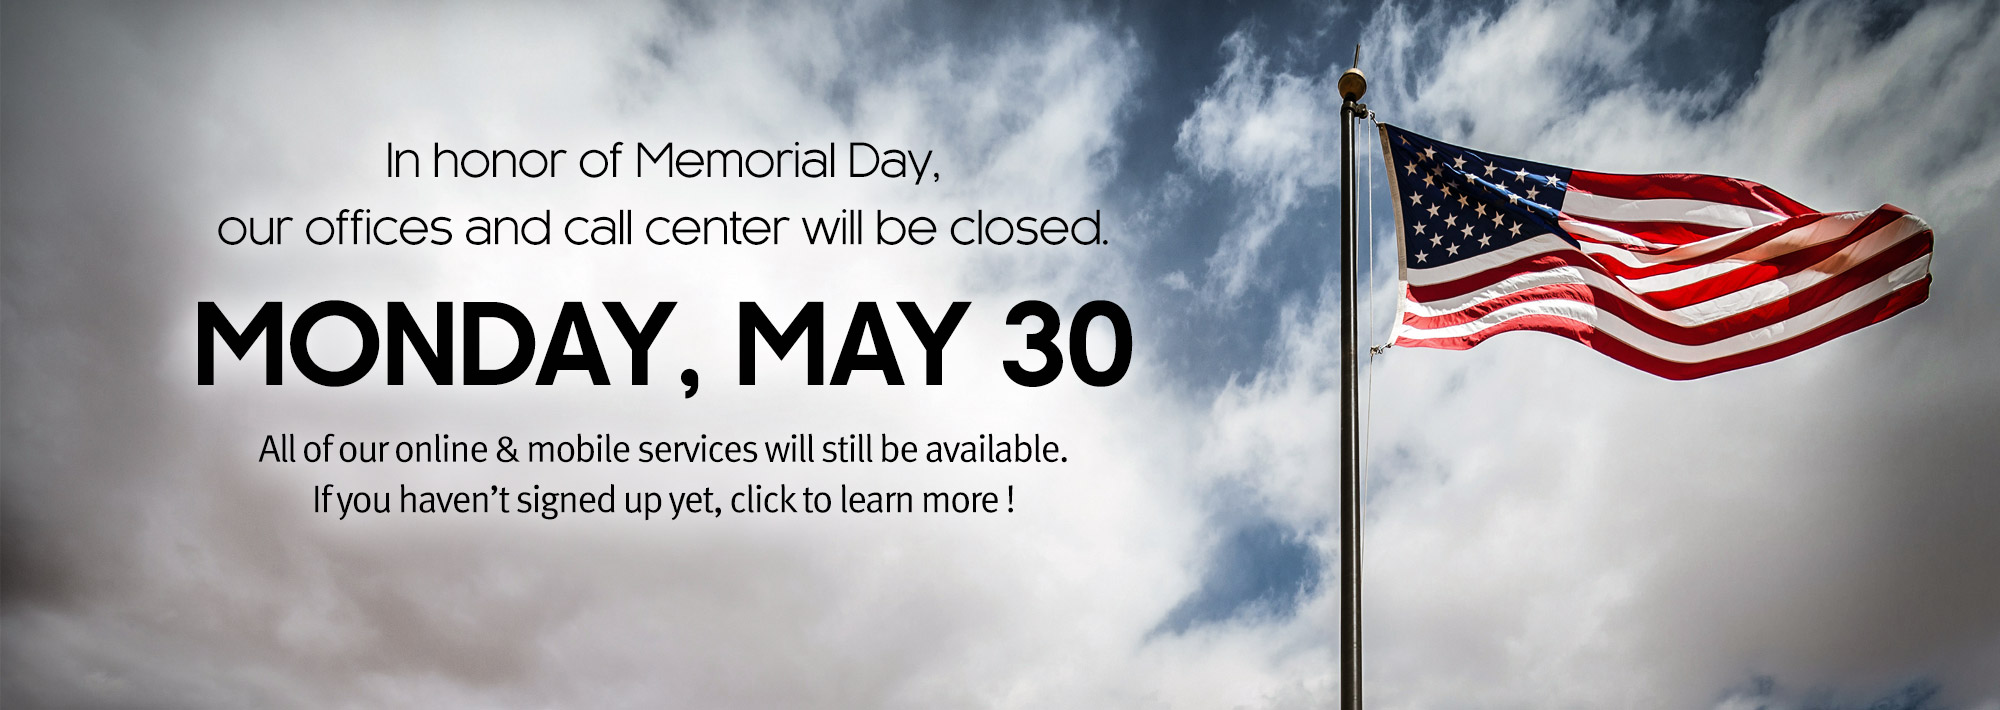 We will be closed Monday, May 30, in honor of Memorial Day.